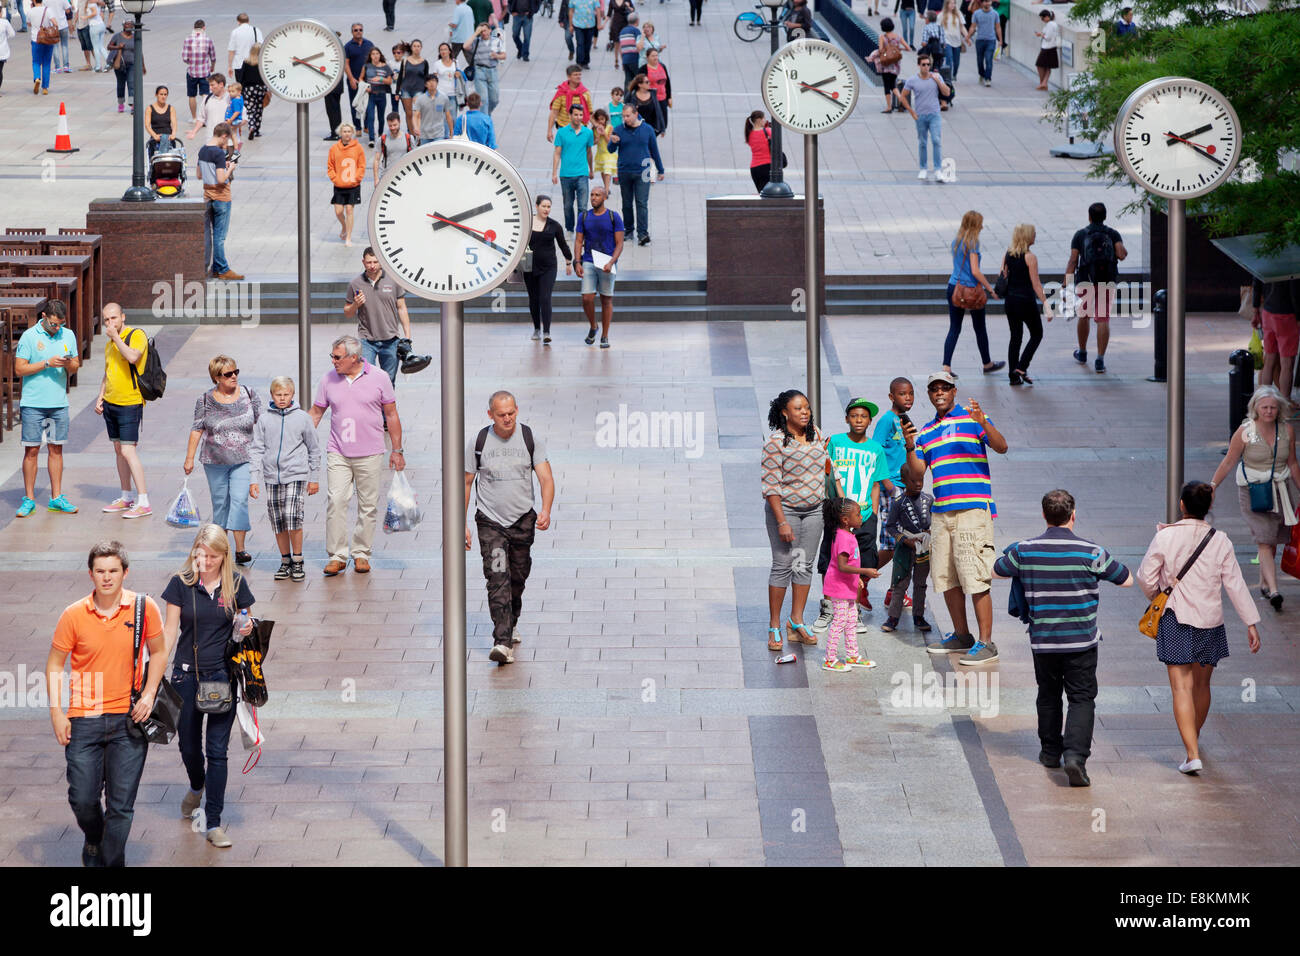 People in a square with clocks, Canary Wharf, Docklands, London, England, United Kingdom - Stock Image